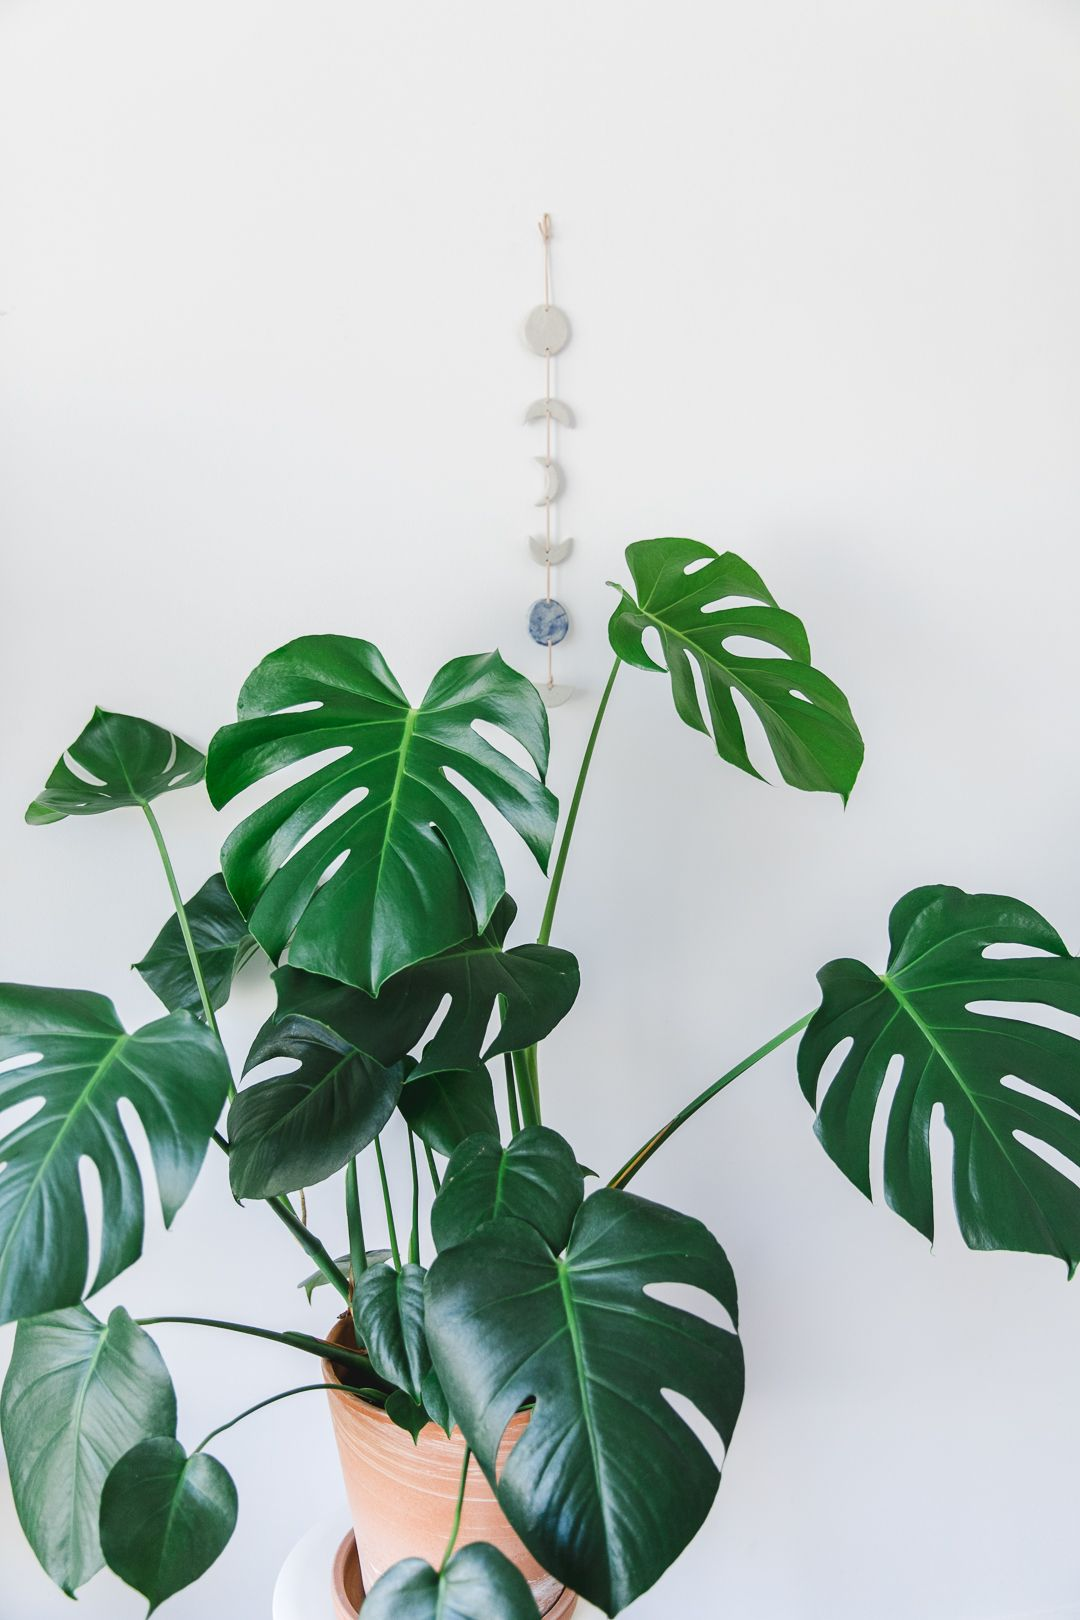 Indoor plant guide - 5 beginner plants you can't kill